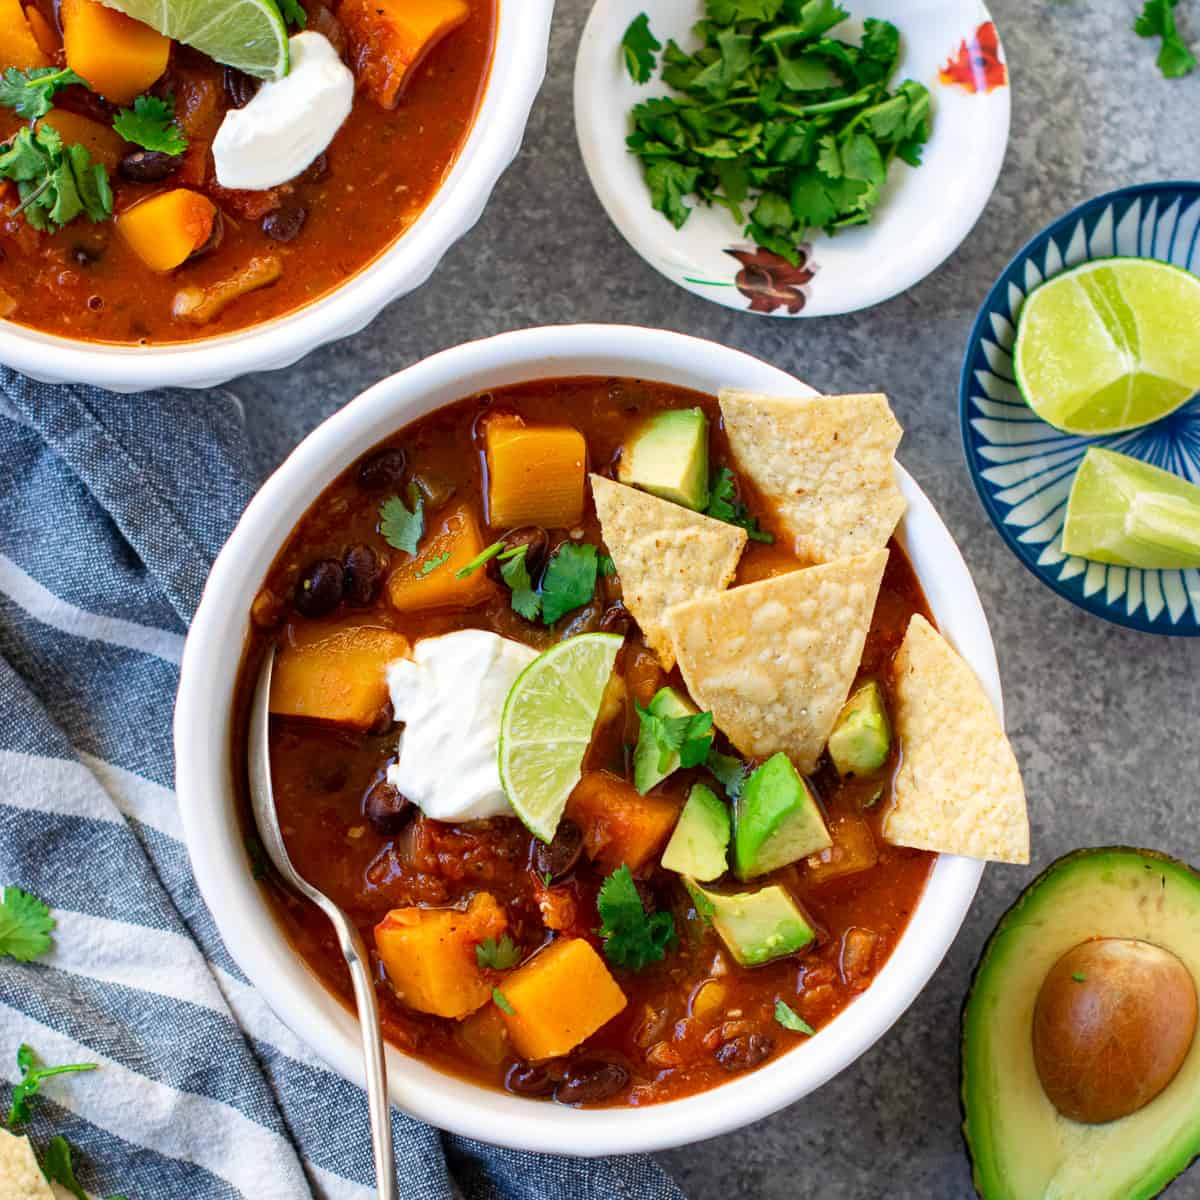 Butternut Squash Black Bean Chili served in two bowls